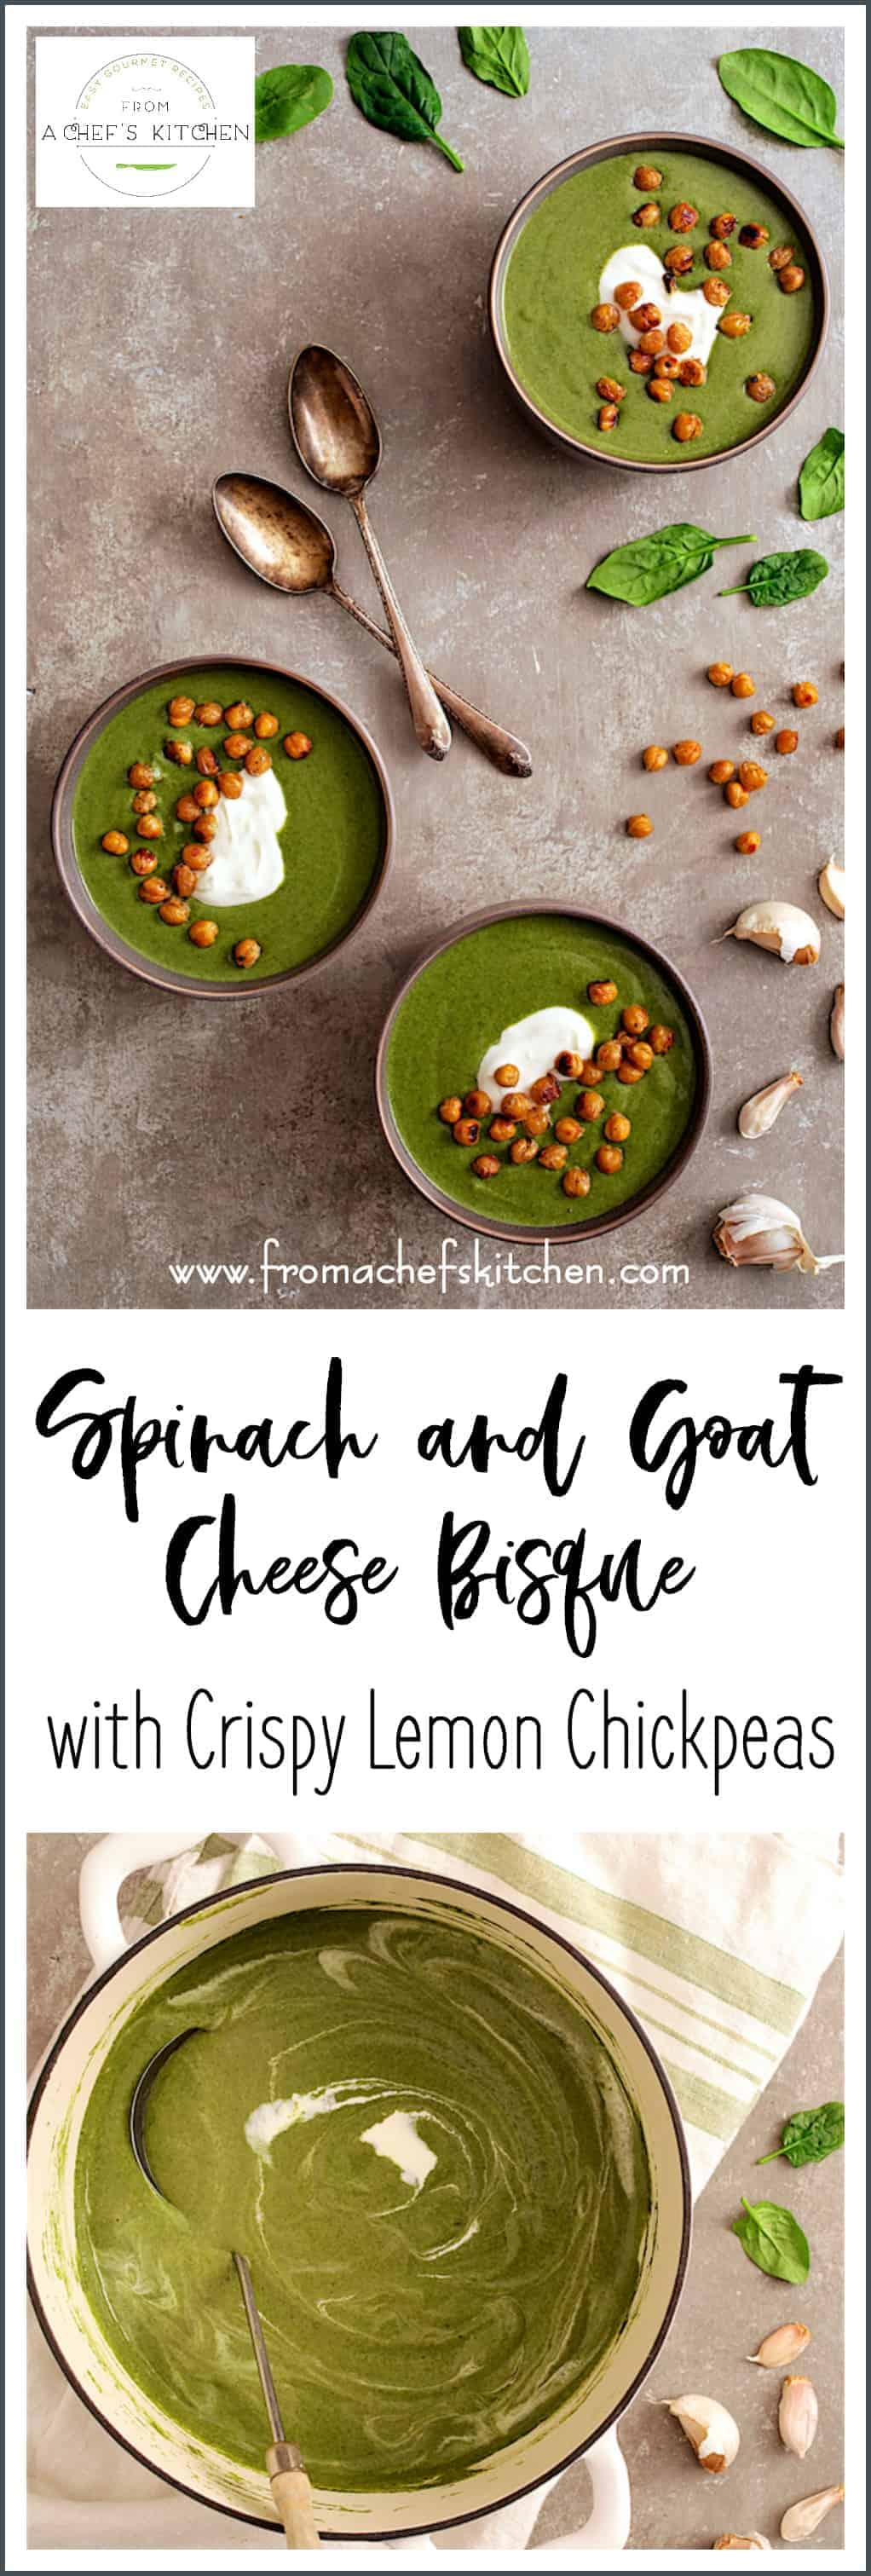 Elegant Spinach Goat Cheese Bisque is silky and creamy with just the right amount of tanginess.  Crispy Lemon Chickpeas and a dollop of Greek yogurt are the perfect toppings!  #spinach #vegetable #bisque #soup #goatcheese #chickpeas